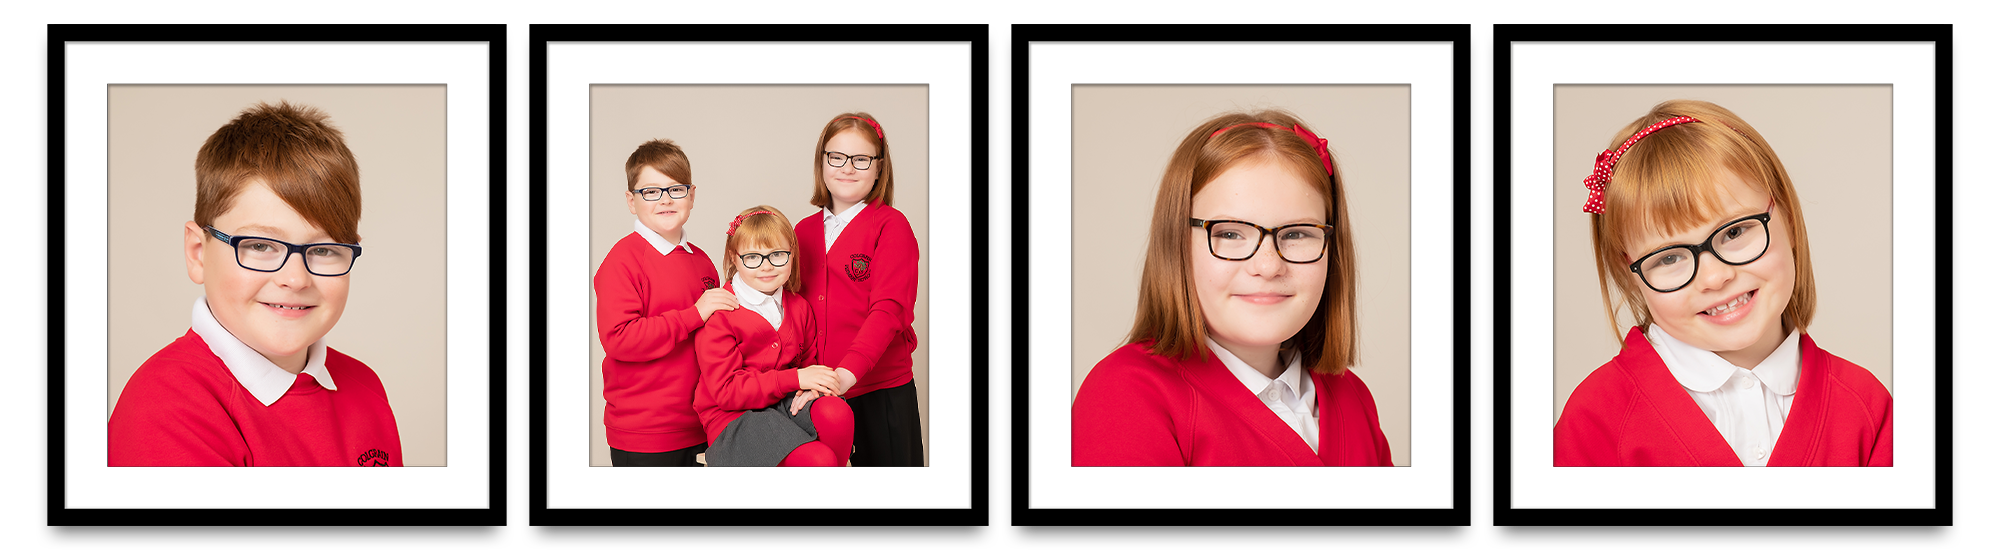 framed individual and sibling school photos Colgrain Primary School Helensburgh Life in Focus Portraits school photographer Rhu Helensburgh Argyll and Bute